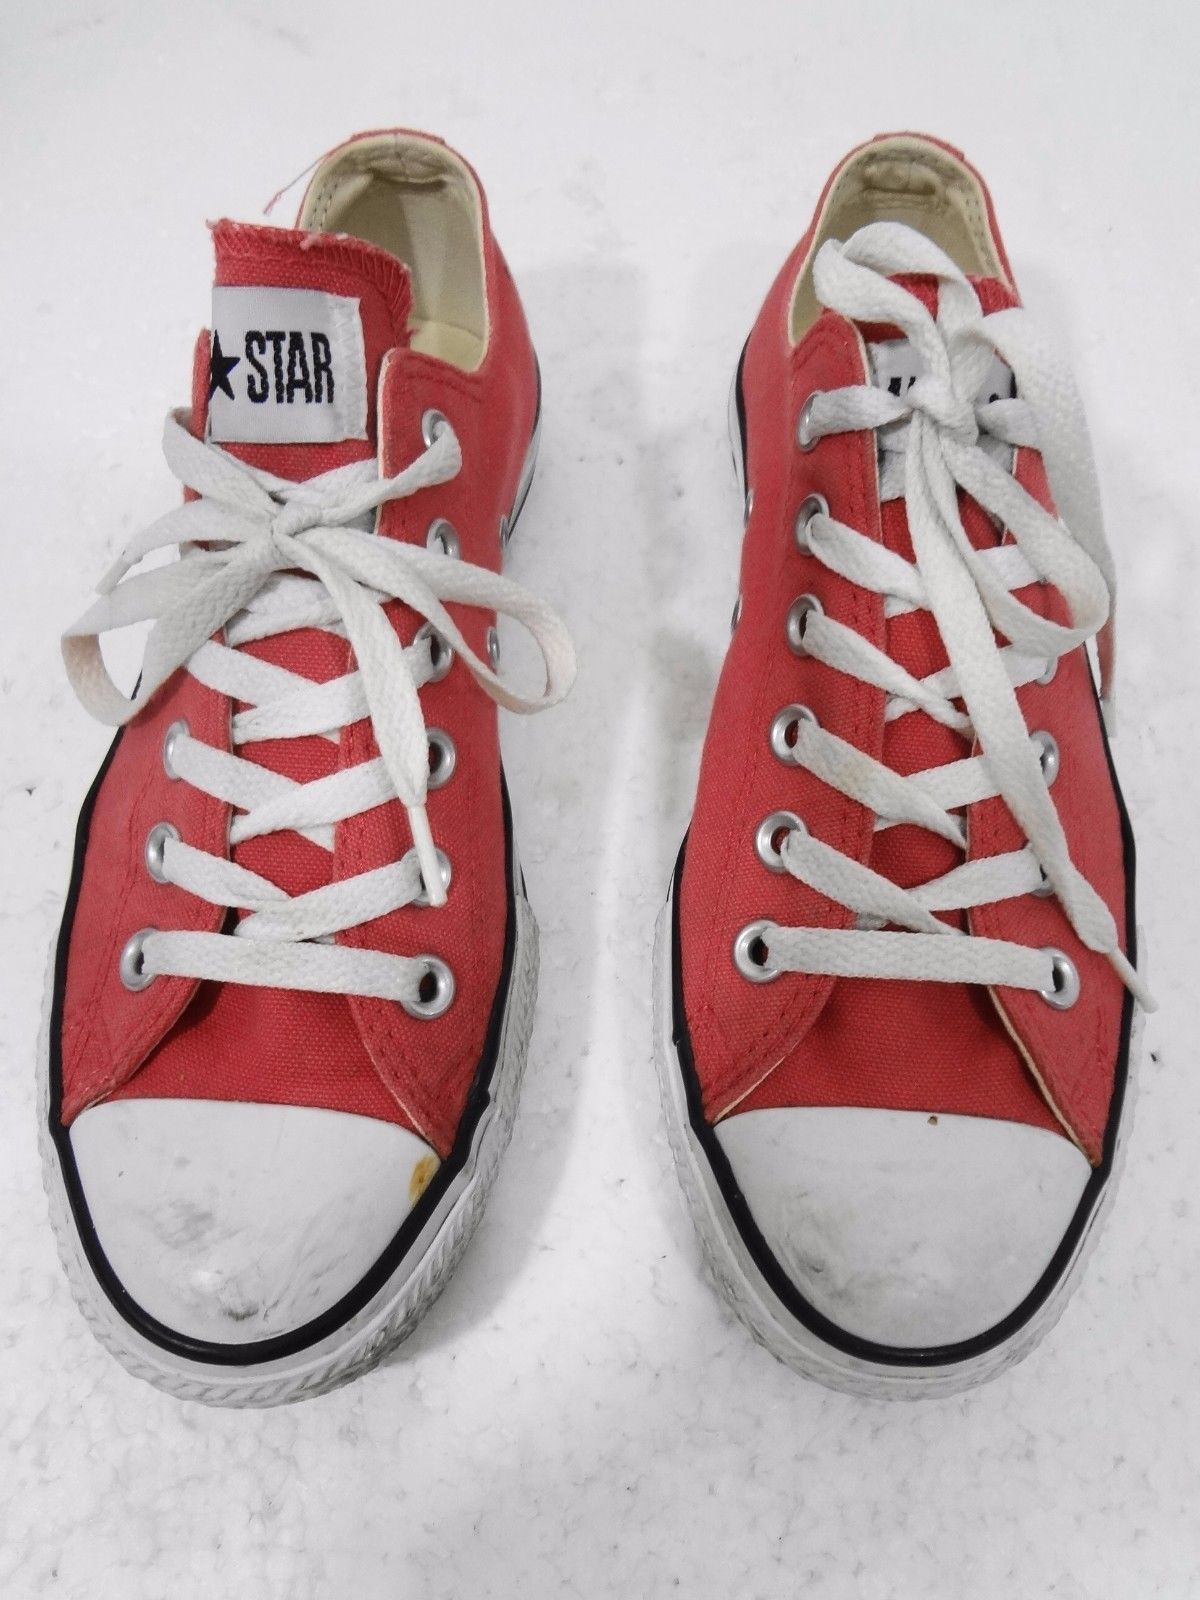 Converse All Star Mens 5.5, Womens 7.5 Pink Canvas Sneakers Gym Shoes